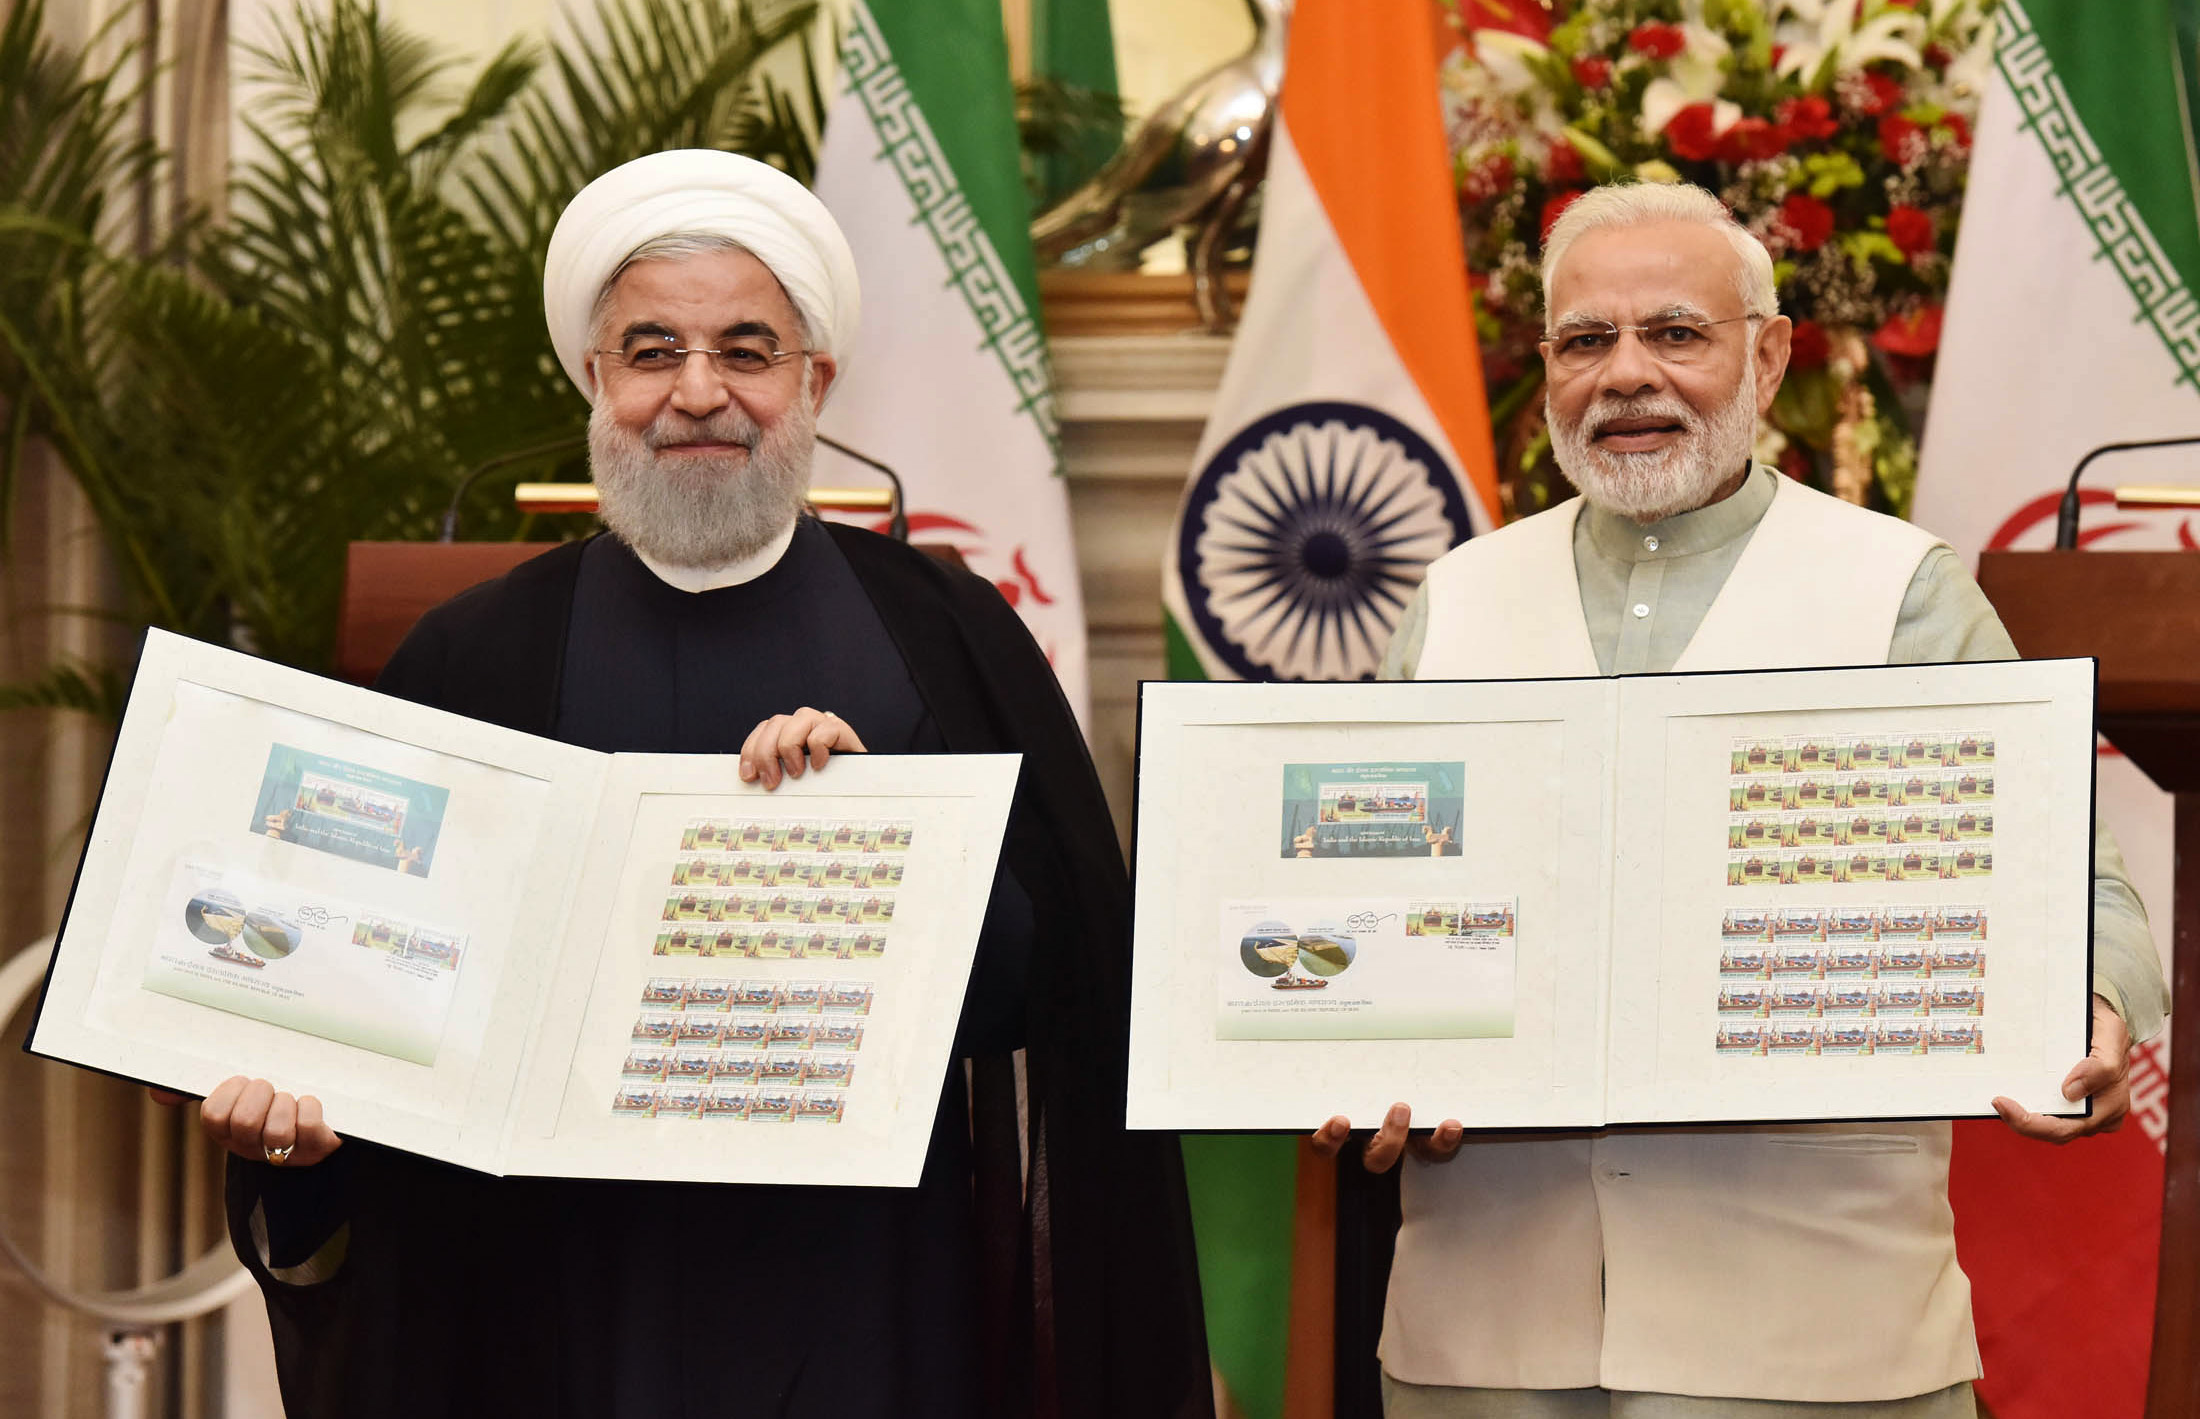 PM Narendra Modi and the President of the Islamic Republic of Iran, Dr. Hassan Rouhani releasing the commemorative stamp celebrating India-Iran relations.